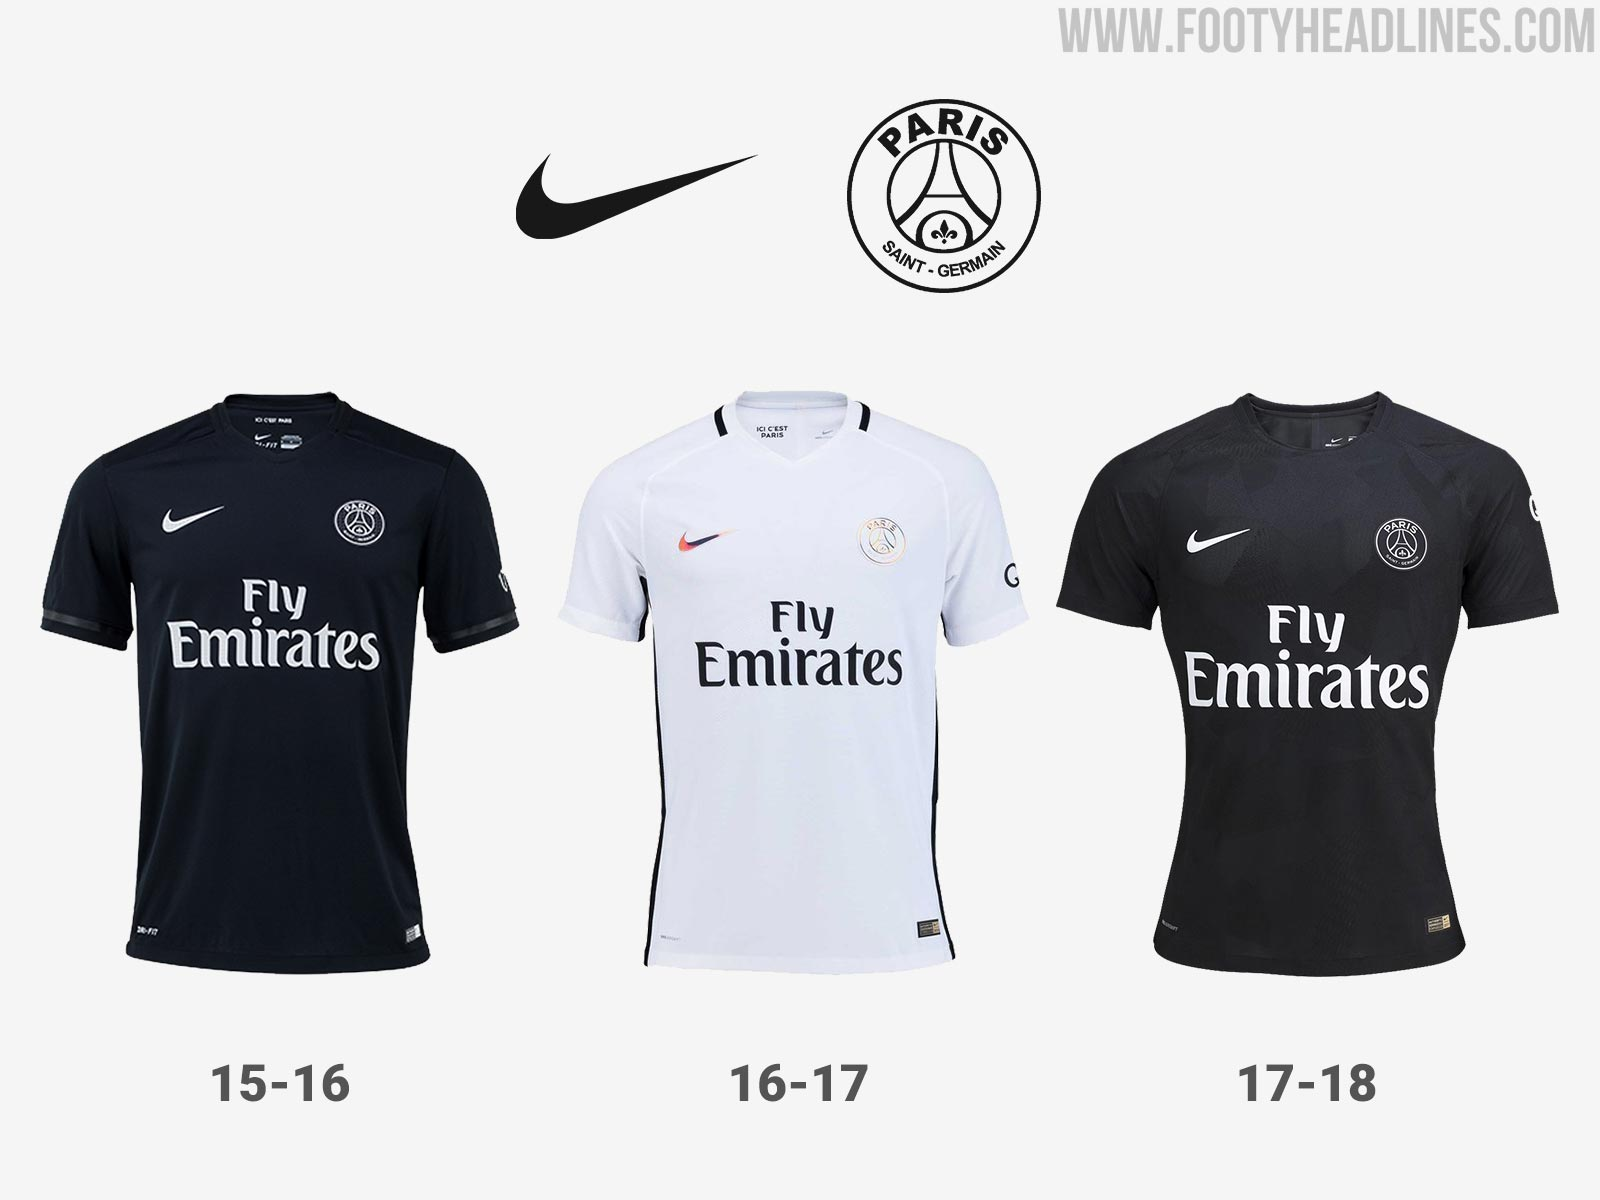 8ff2f54d4 No design specifics of the Paris Saint-Germain 18-19 third kit are known at  the moment